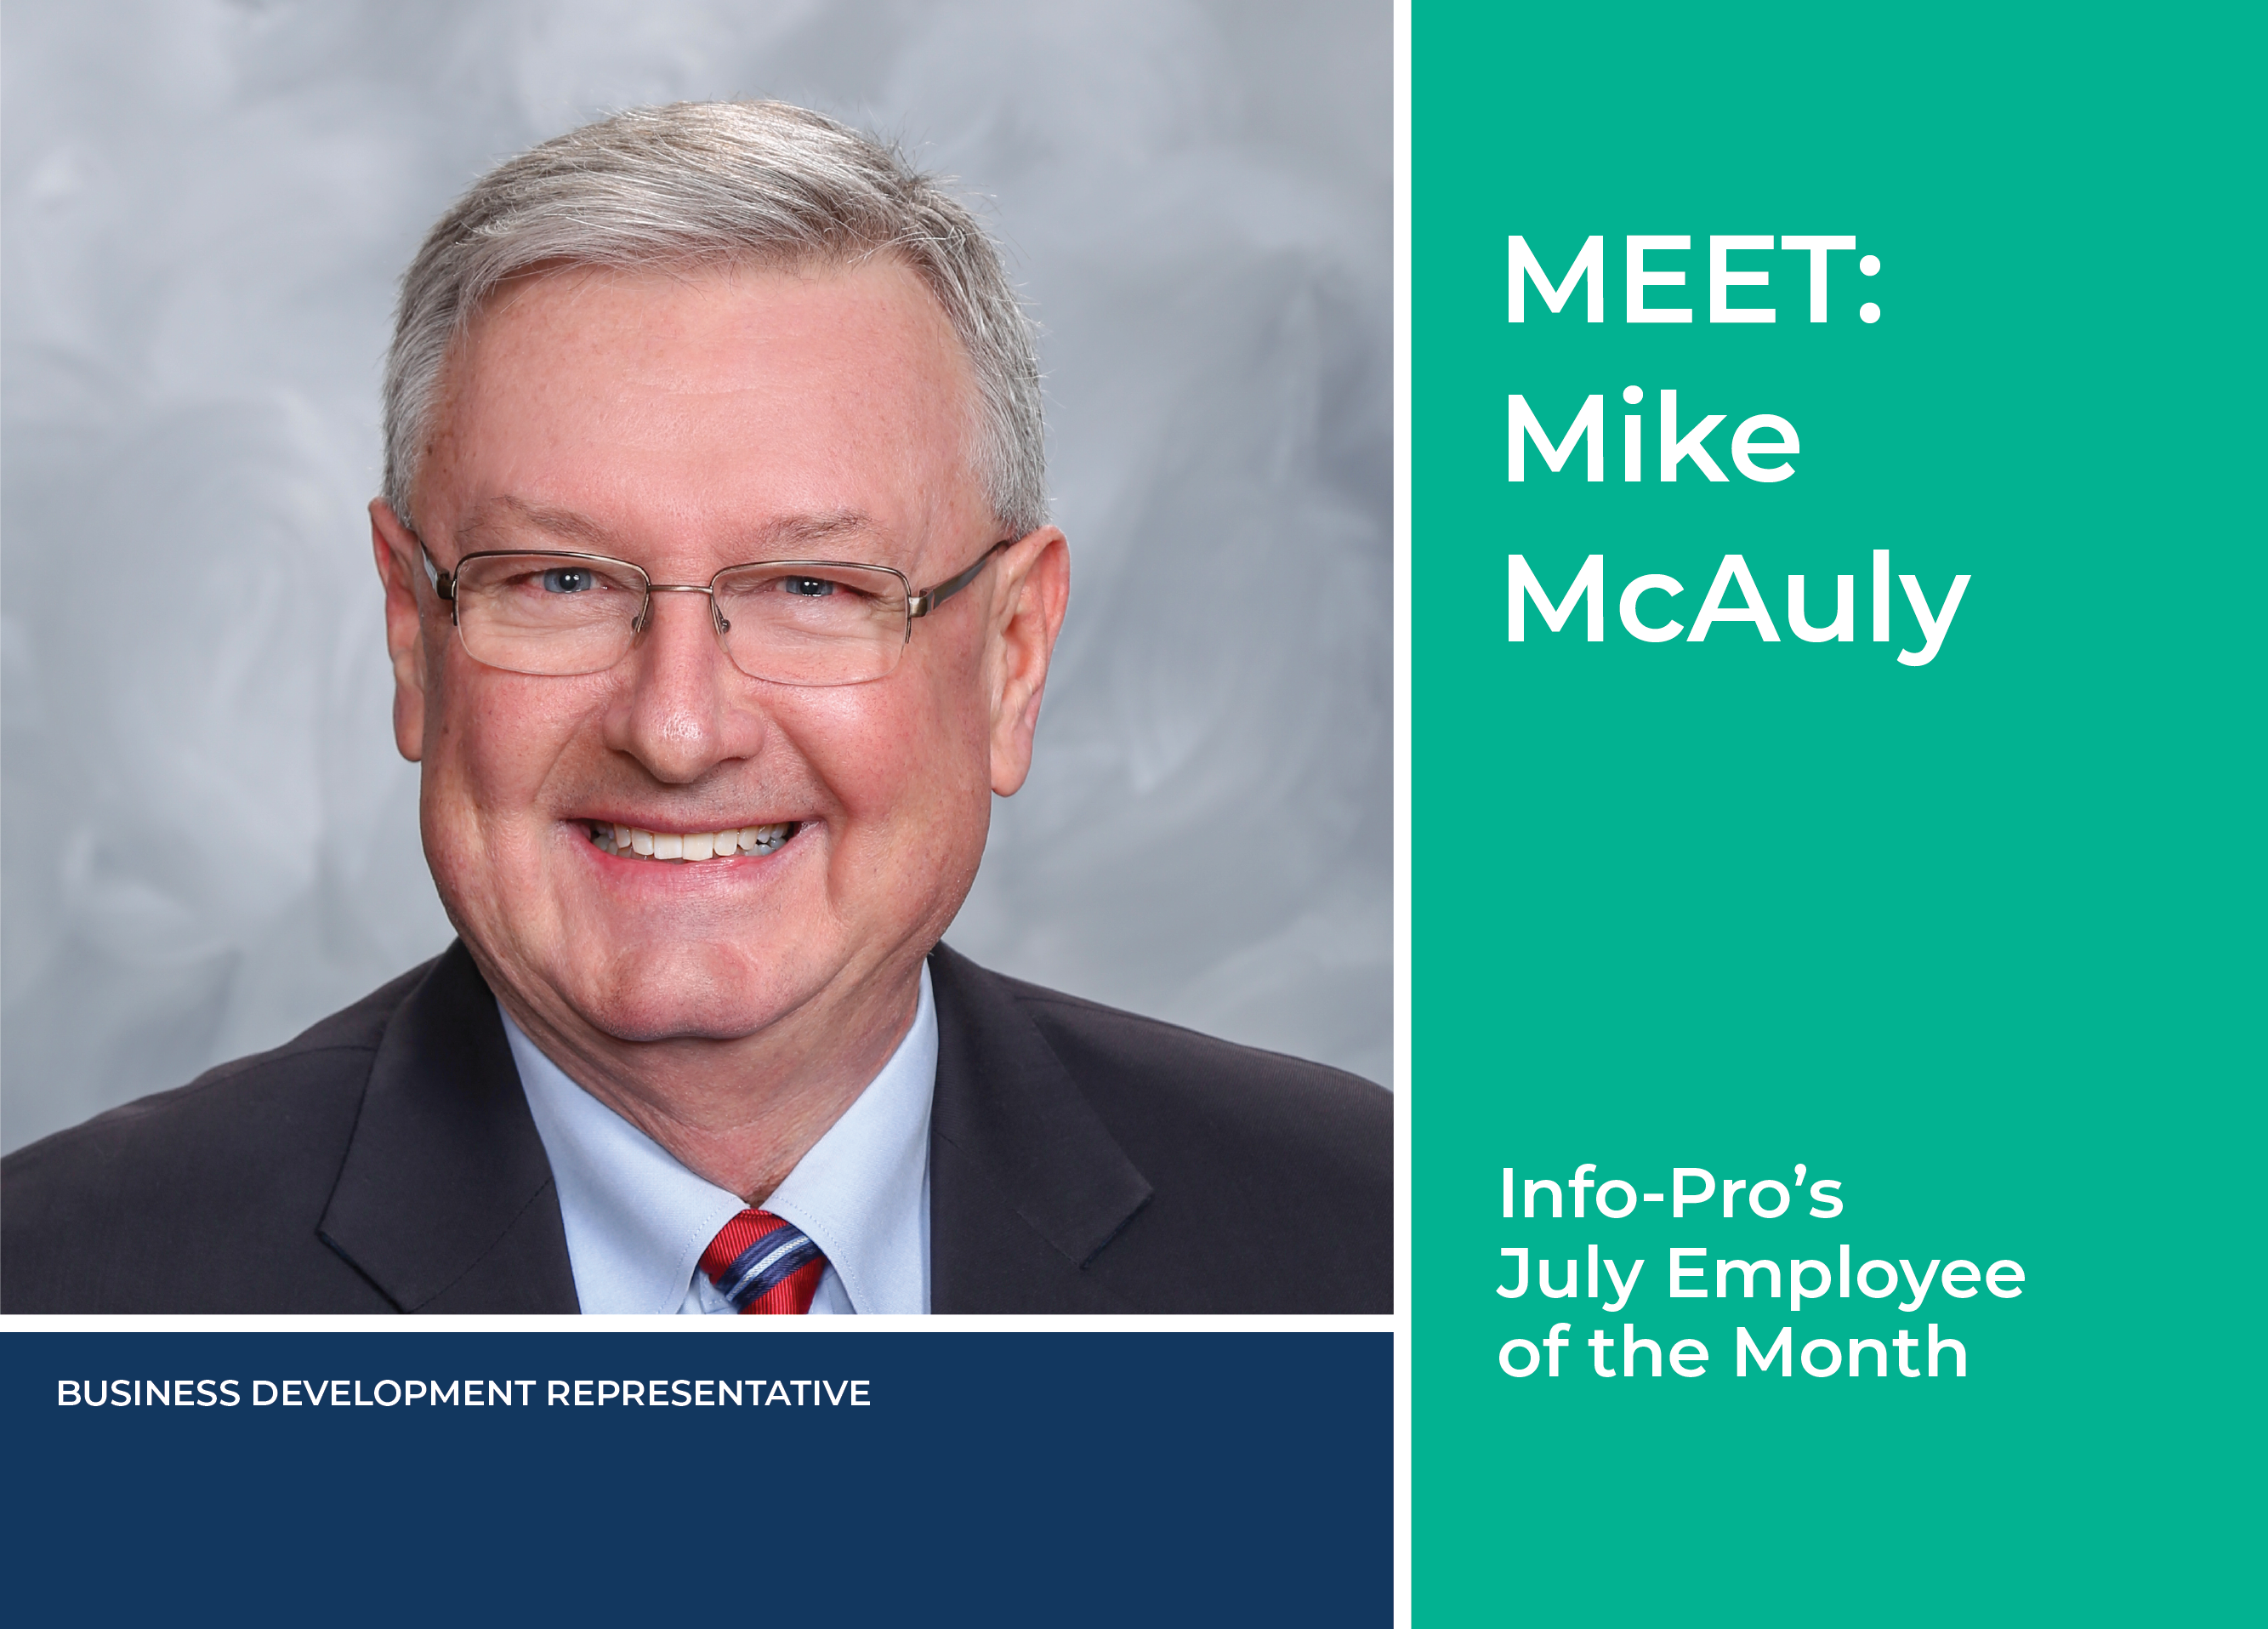 Info-Pro's July Employee of the Month: Mike McAuly